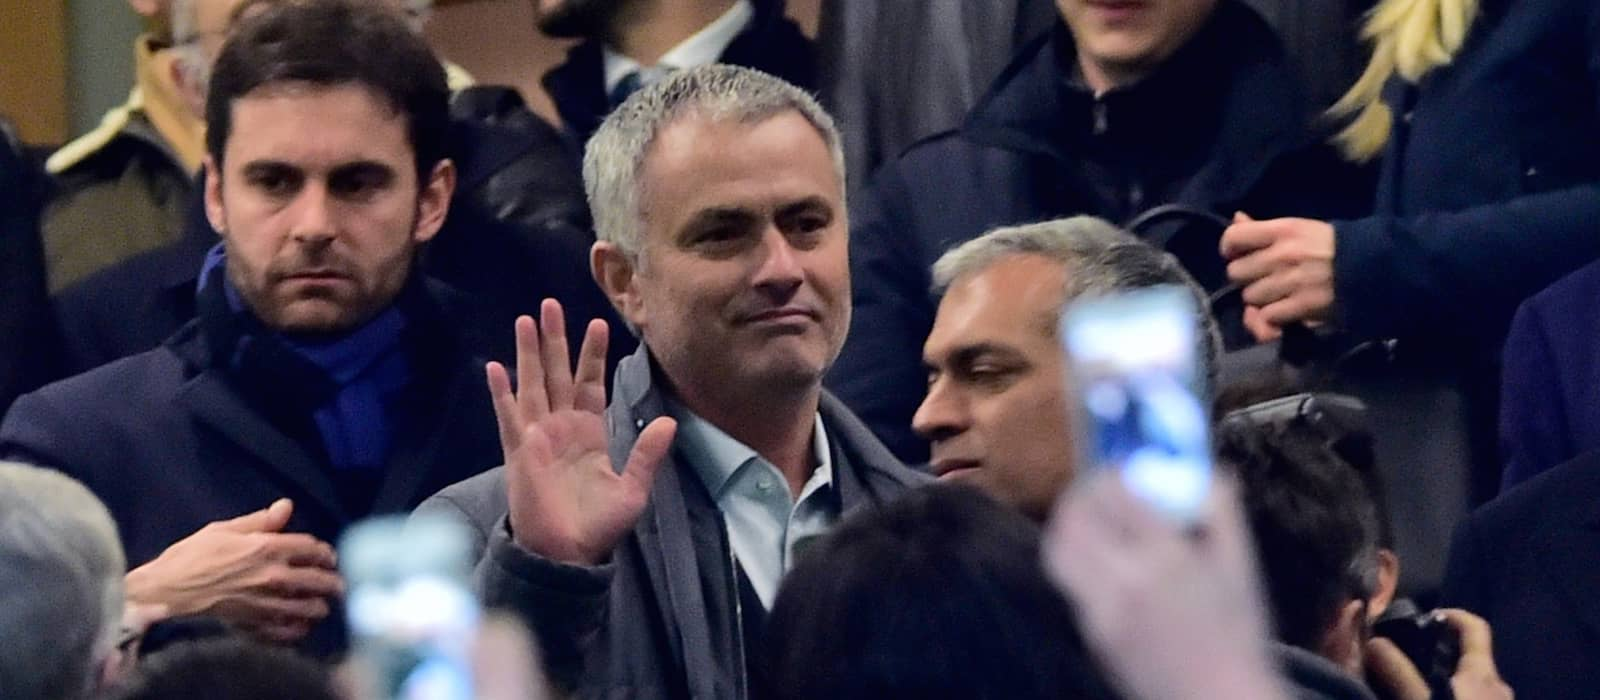 LIVE Manchester United updates: Official Jose Mourinho announcement expected today